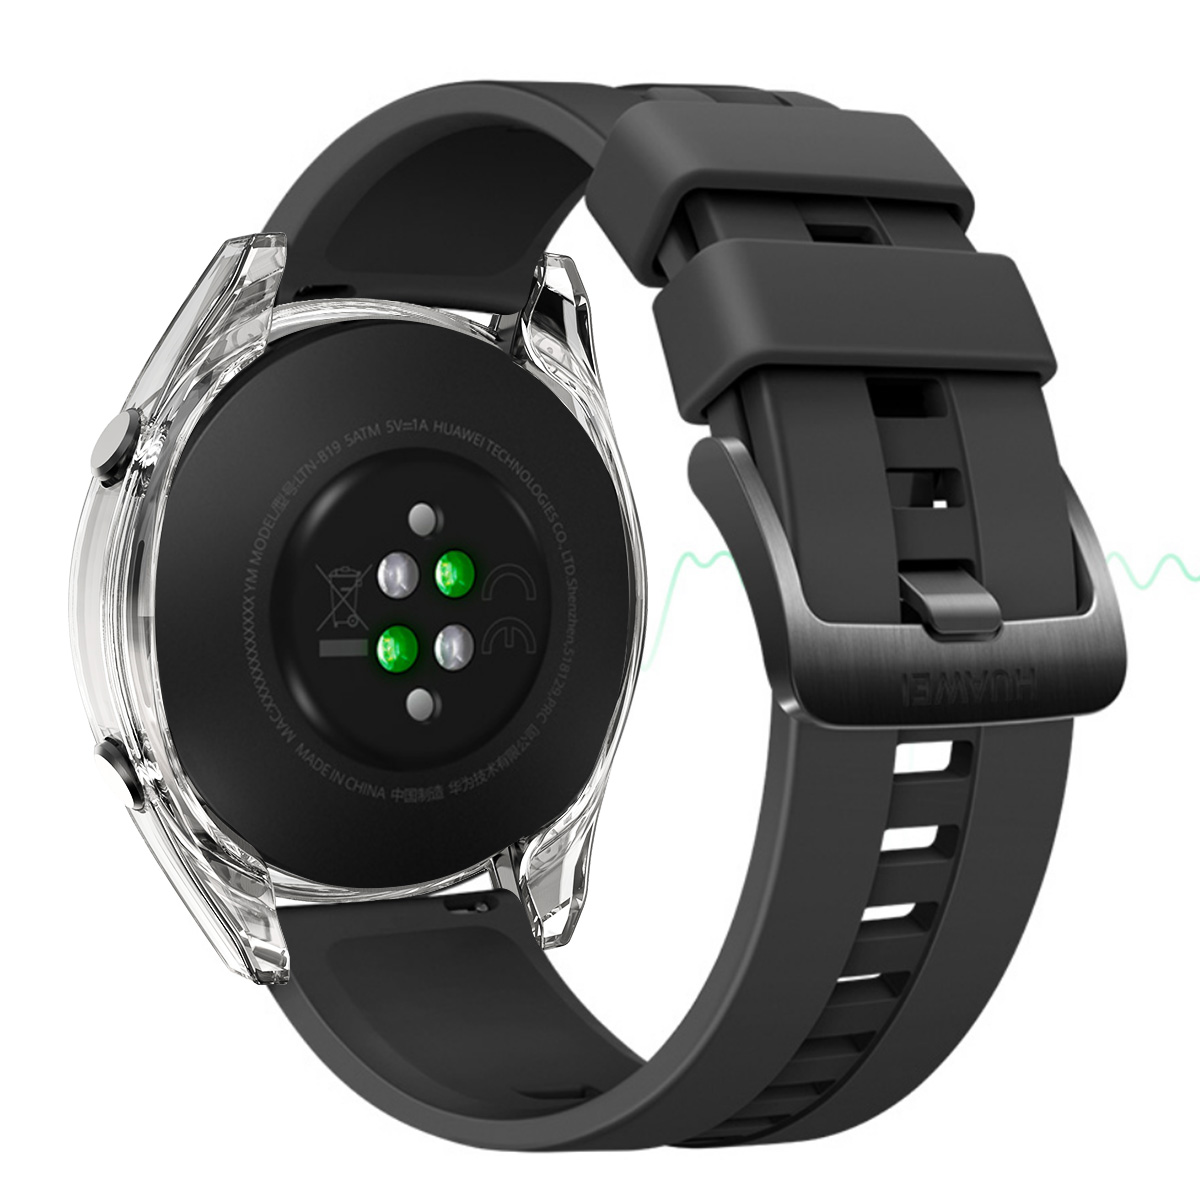 Bakeey Full Protector Watch Case Watch Cover for Huawei Watch GT2